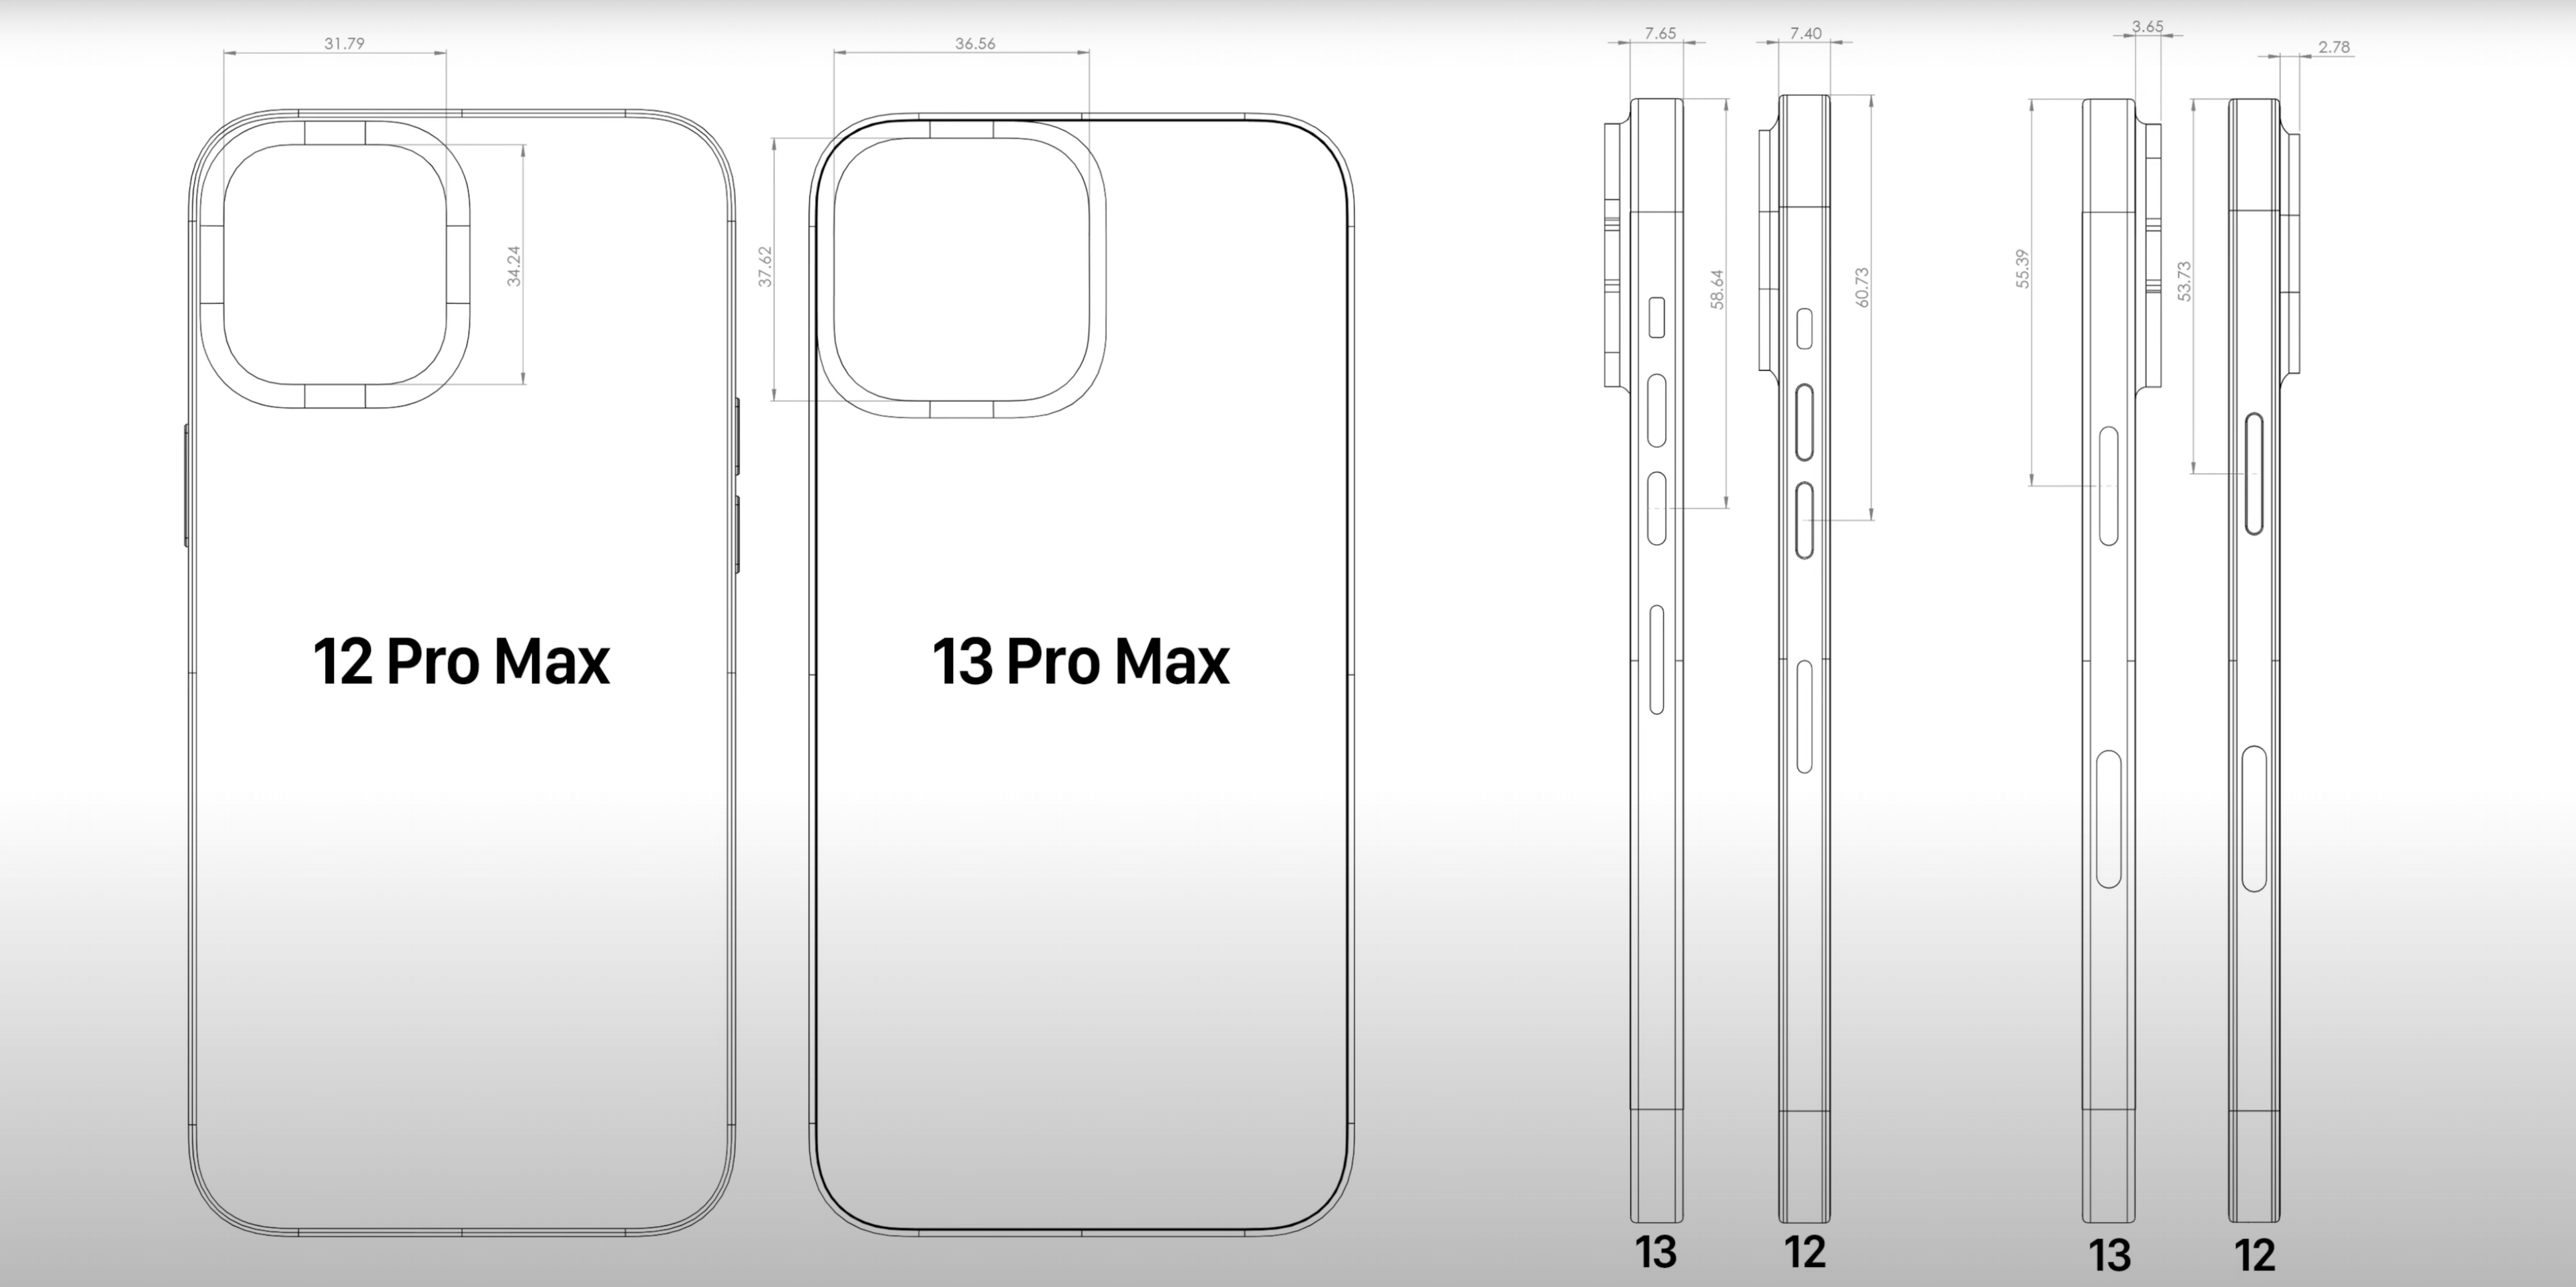 iphone 13 pro max cads eap